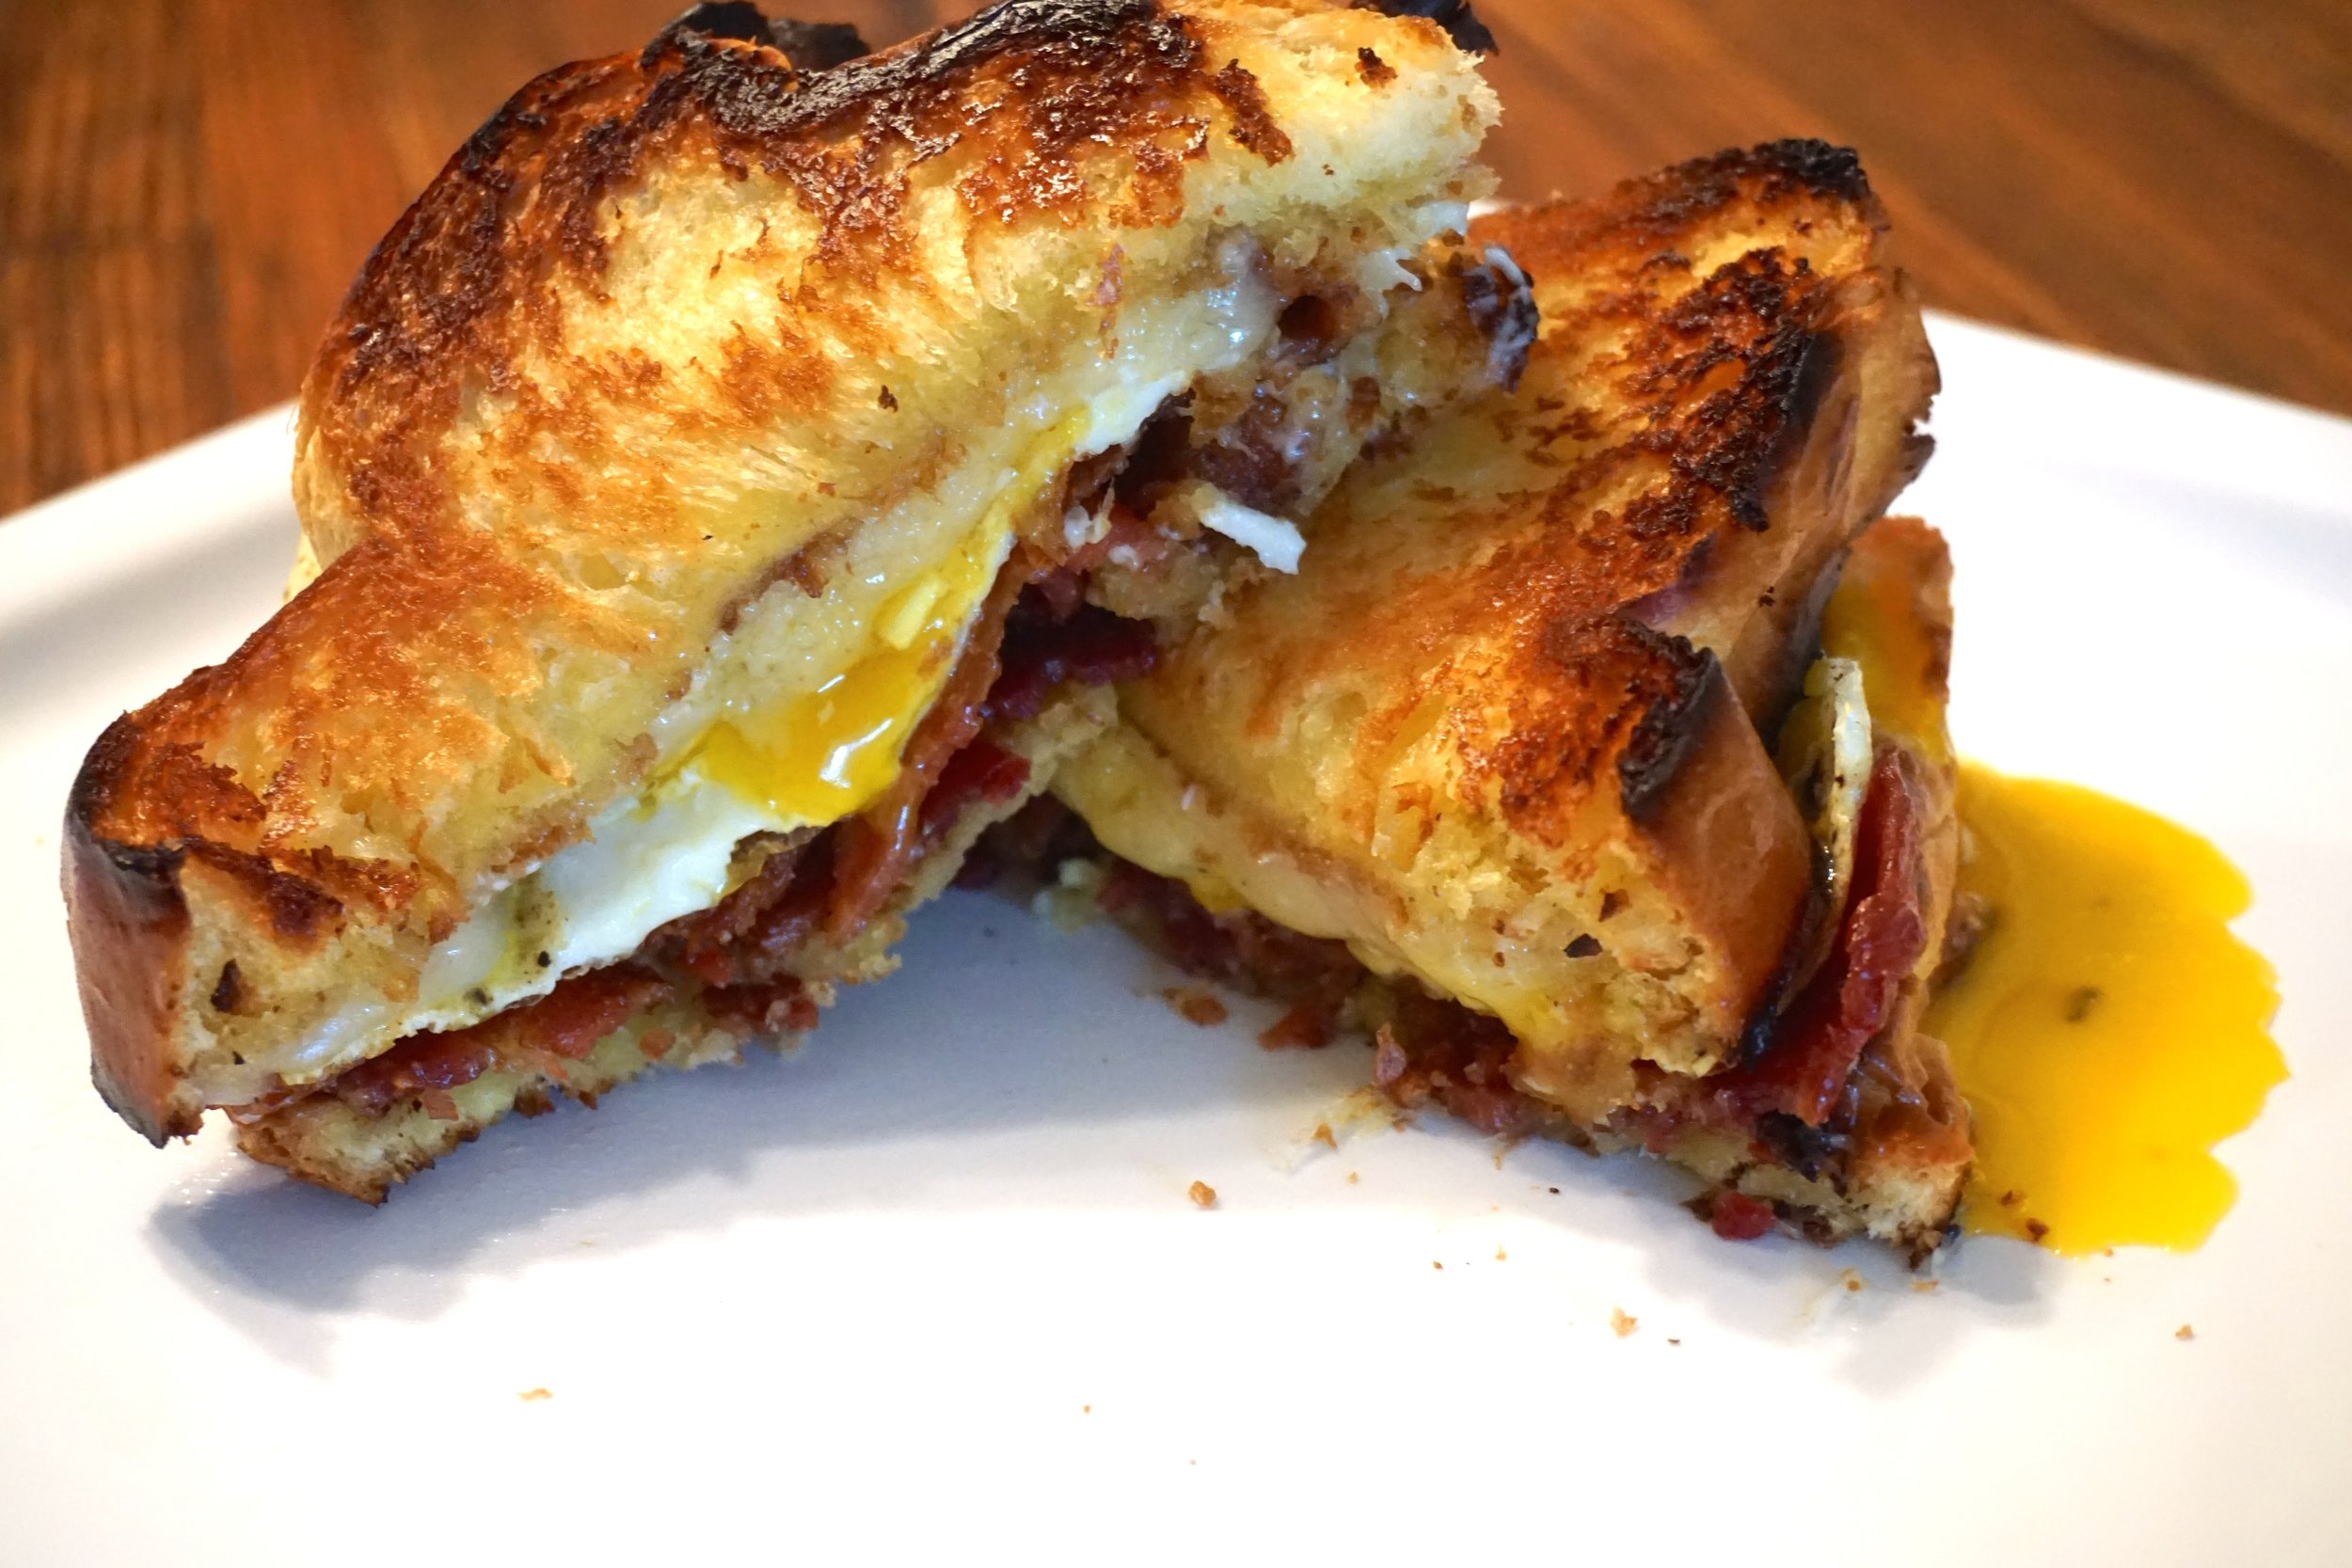 The Best Breakfast Sandwich - This is the most amazing breakfast sandwich you will ever eat. Simple ingredients that are incredible when combined together. Soon to be your favorite anytime